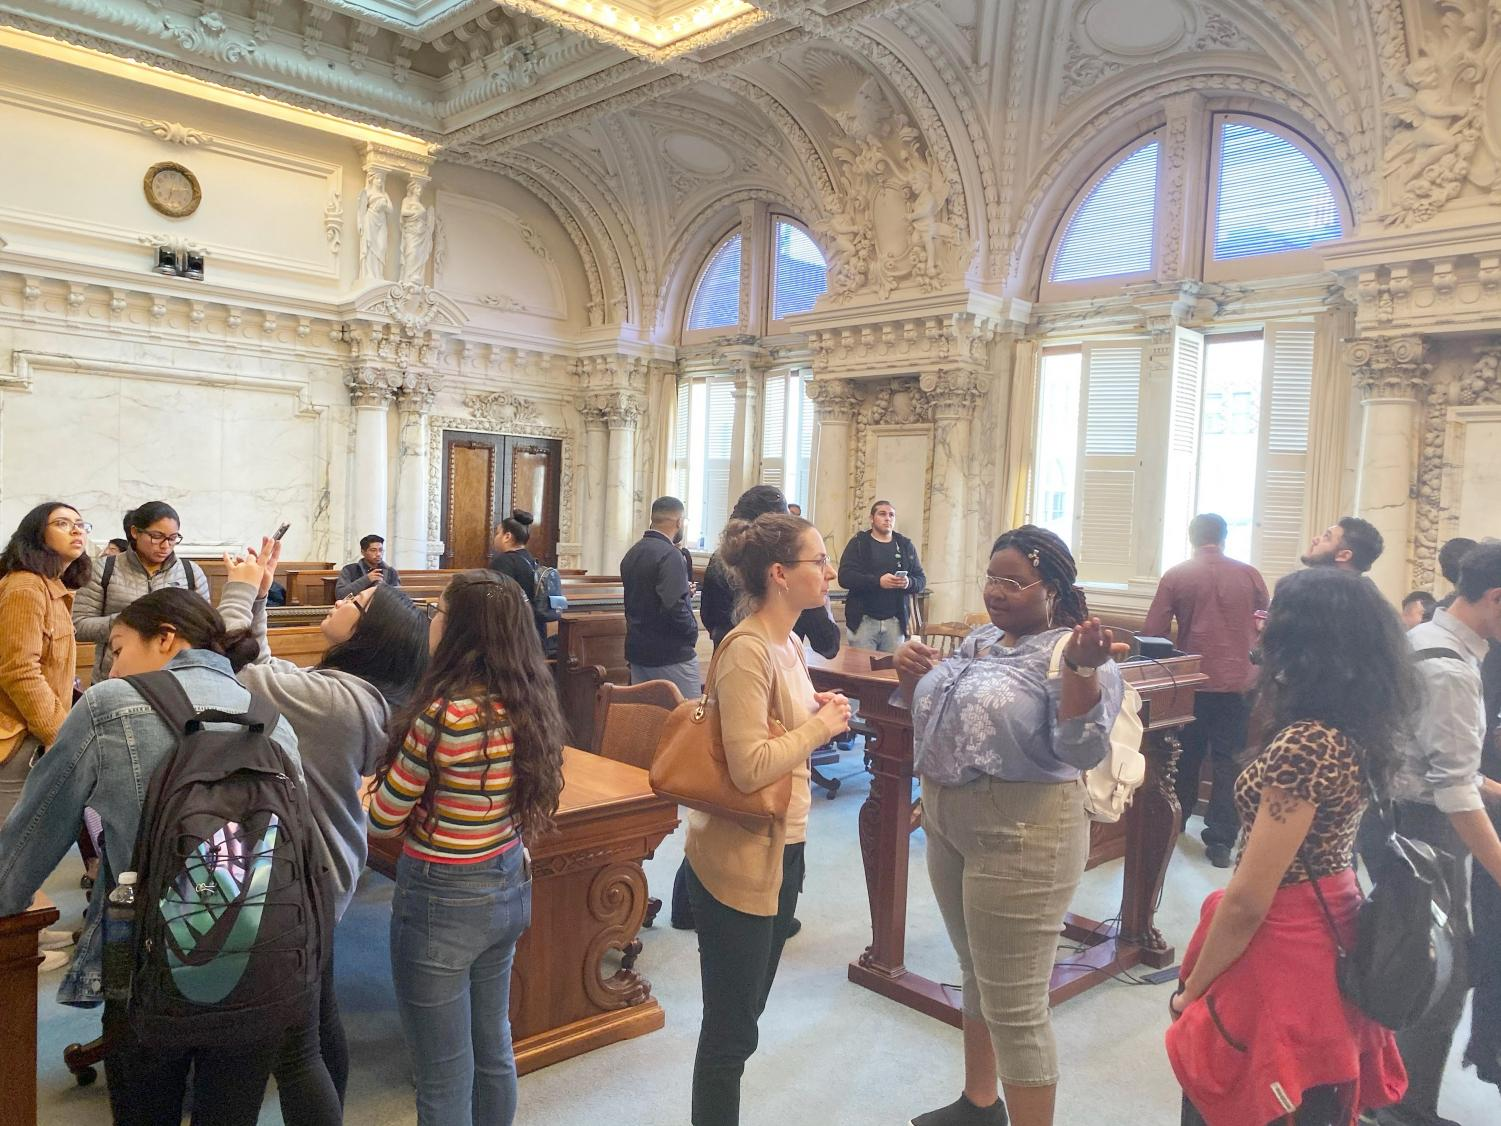 Political science classes from Contra Costa College took a tour of the Ninth Circuit United States Court of Appeals in San Francisco on Friday.